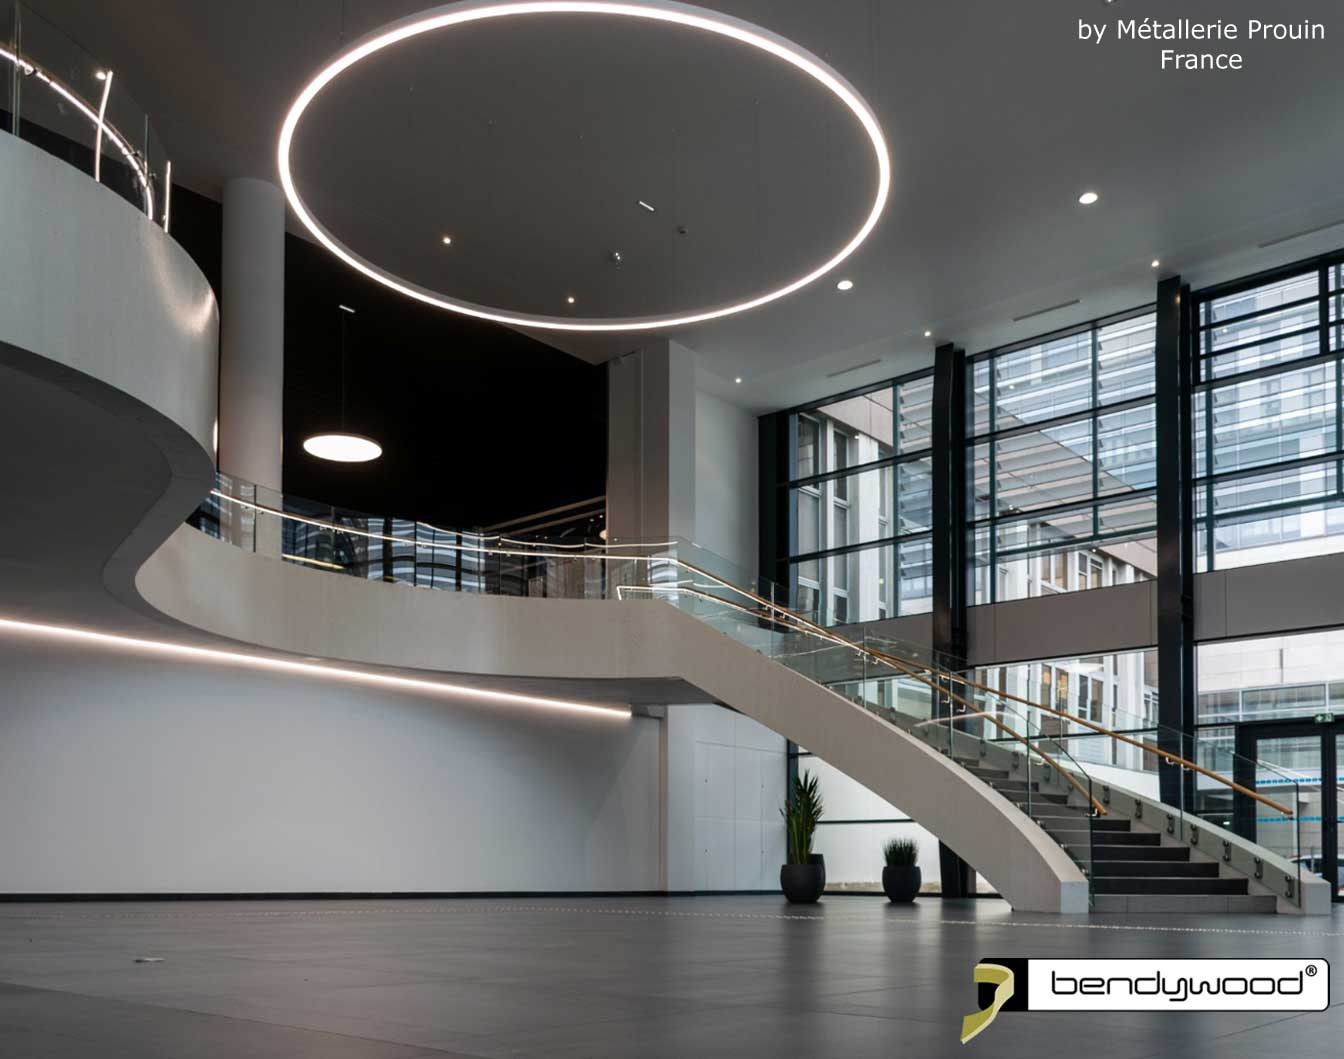 Bending wood Bendywood® - curved staircase with glass railing and wooden handrails with LED strip